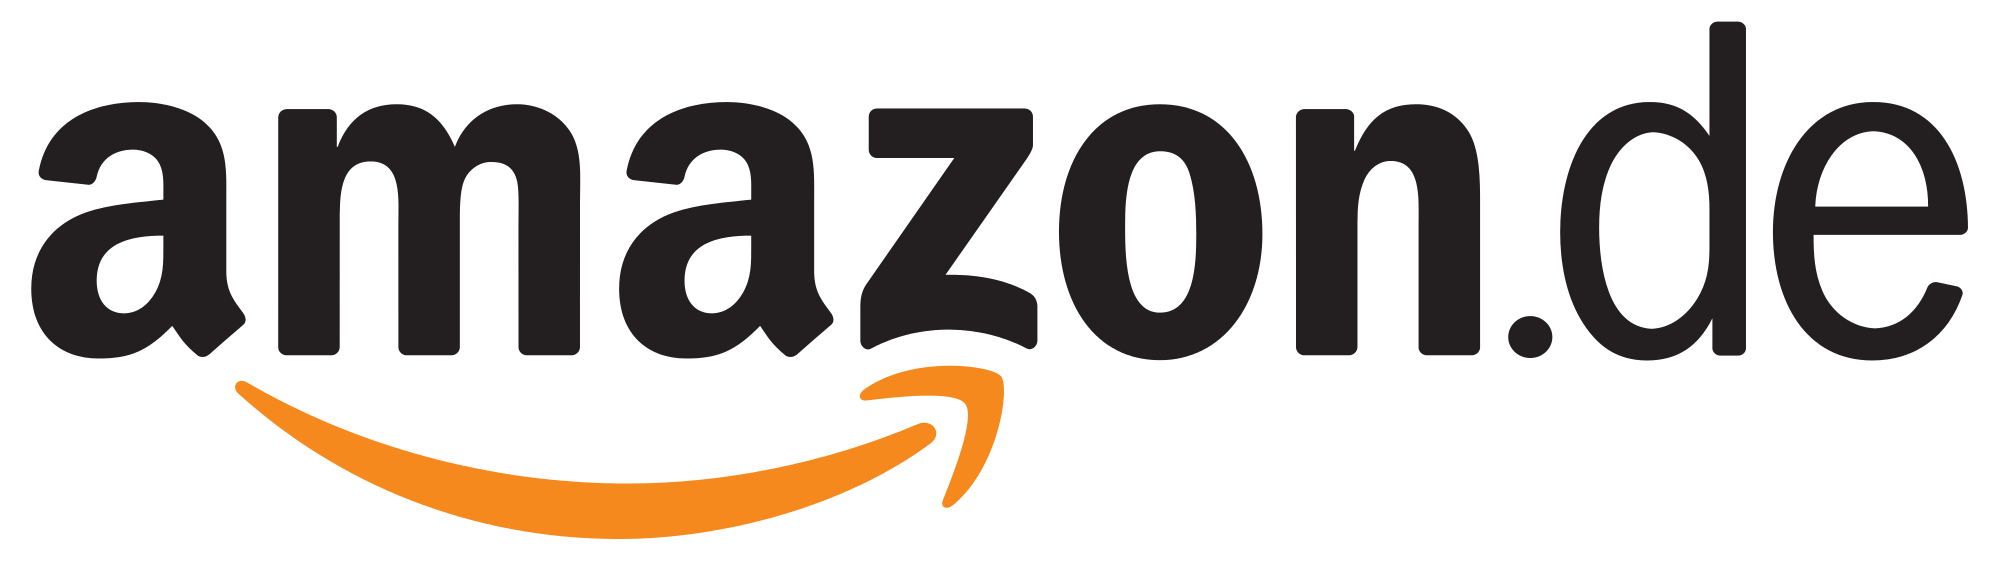 amazon de logo png